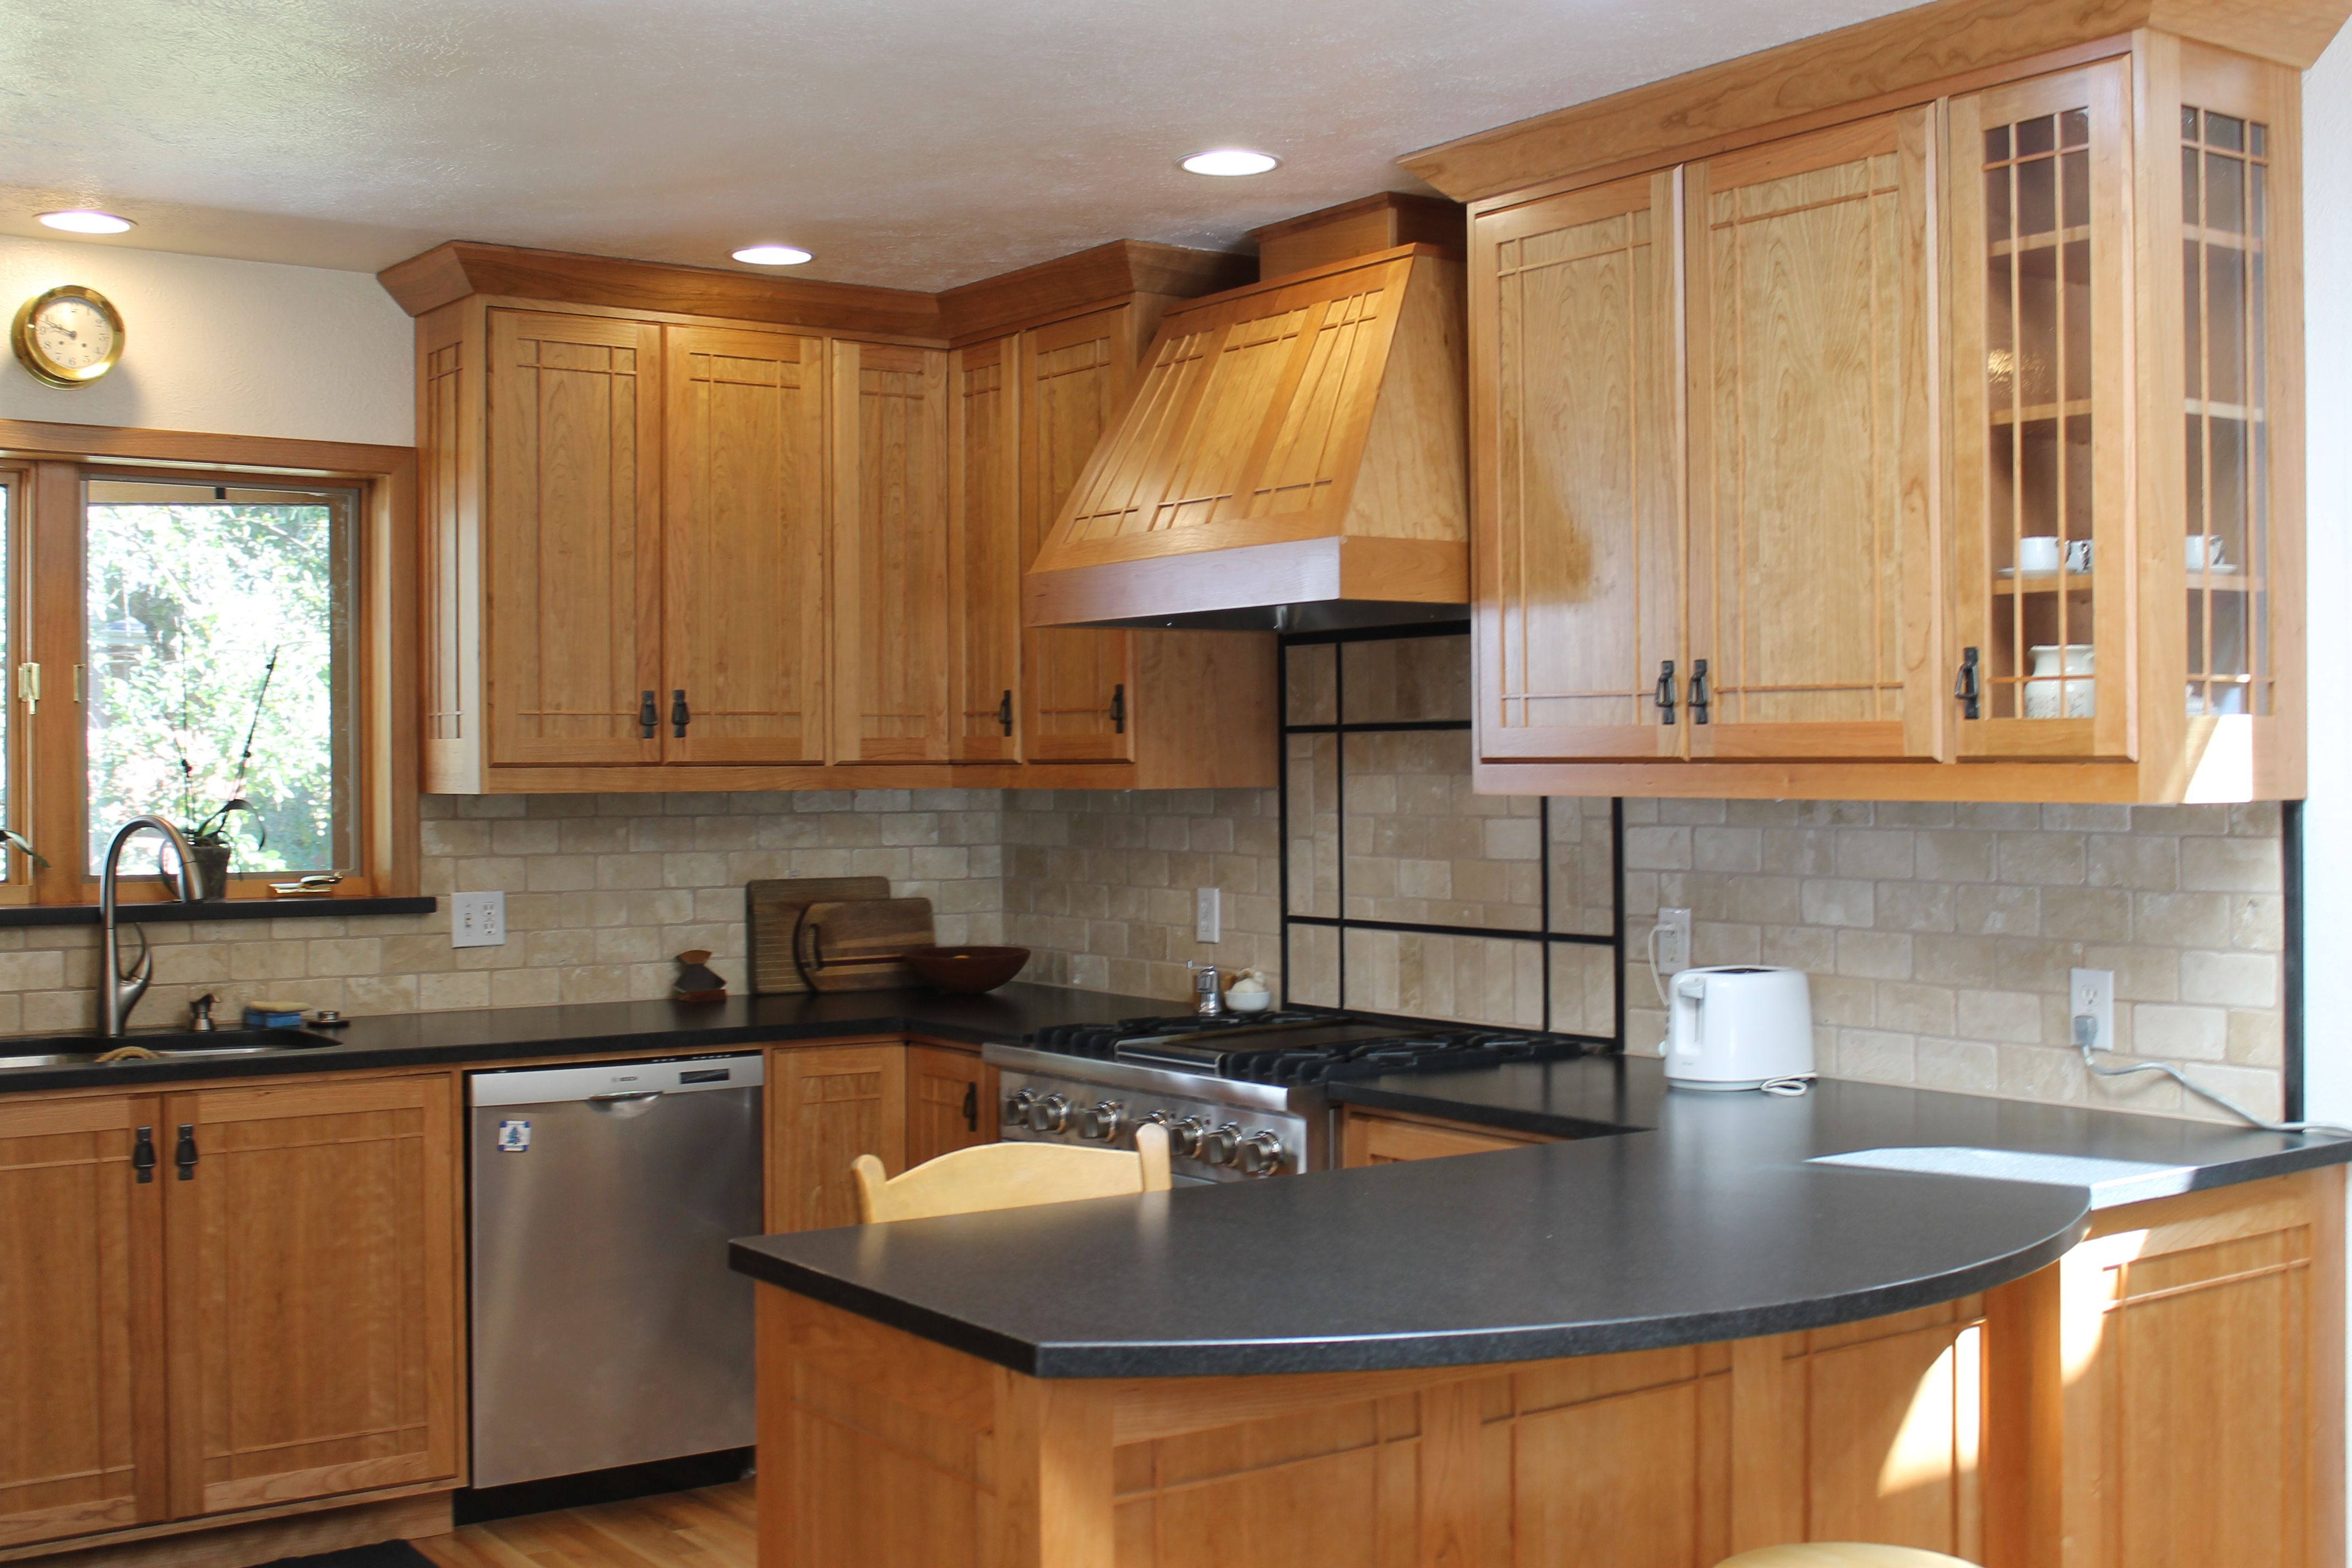 oak kitchen cabinets Wood kitchen cabinets